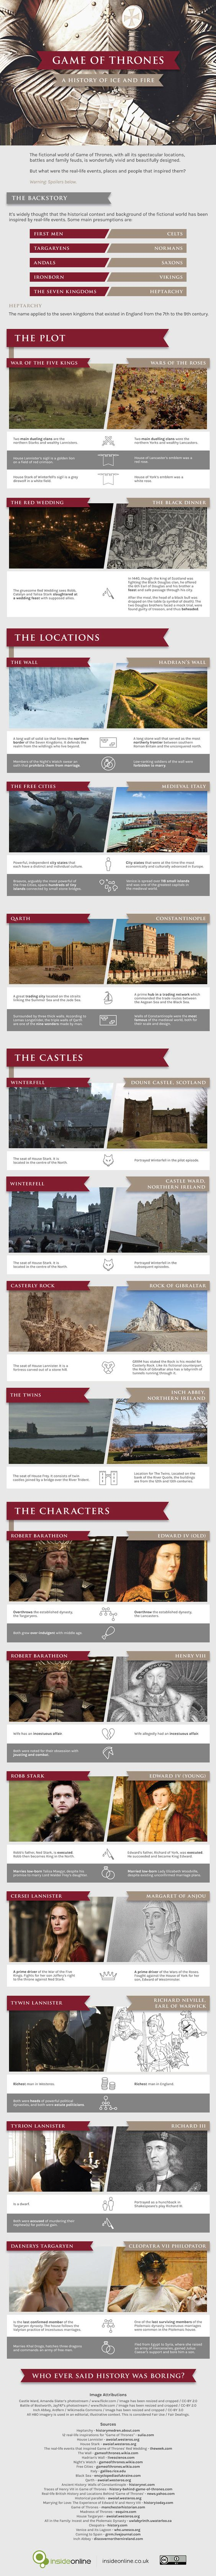 game of thrones history and lore kingsguard